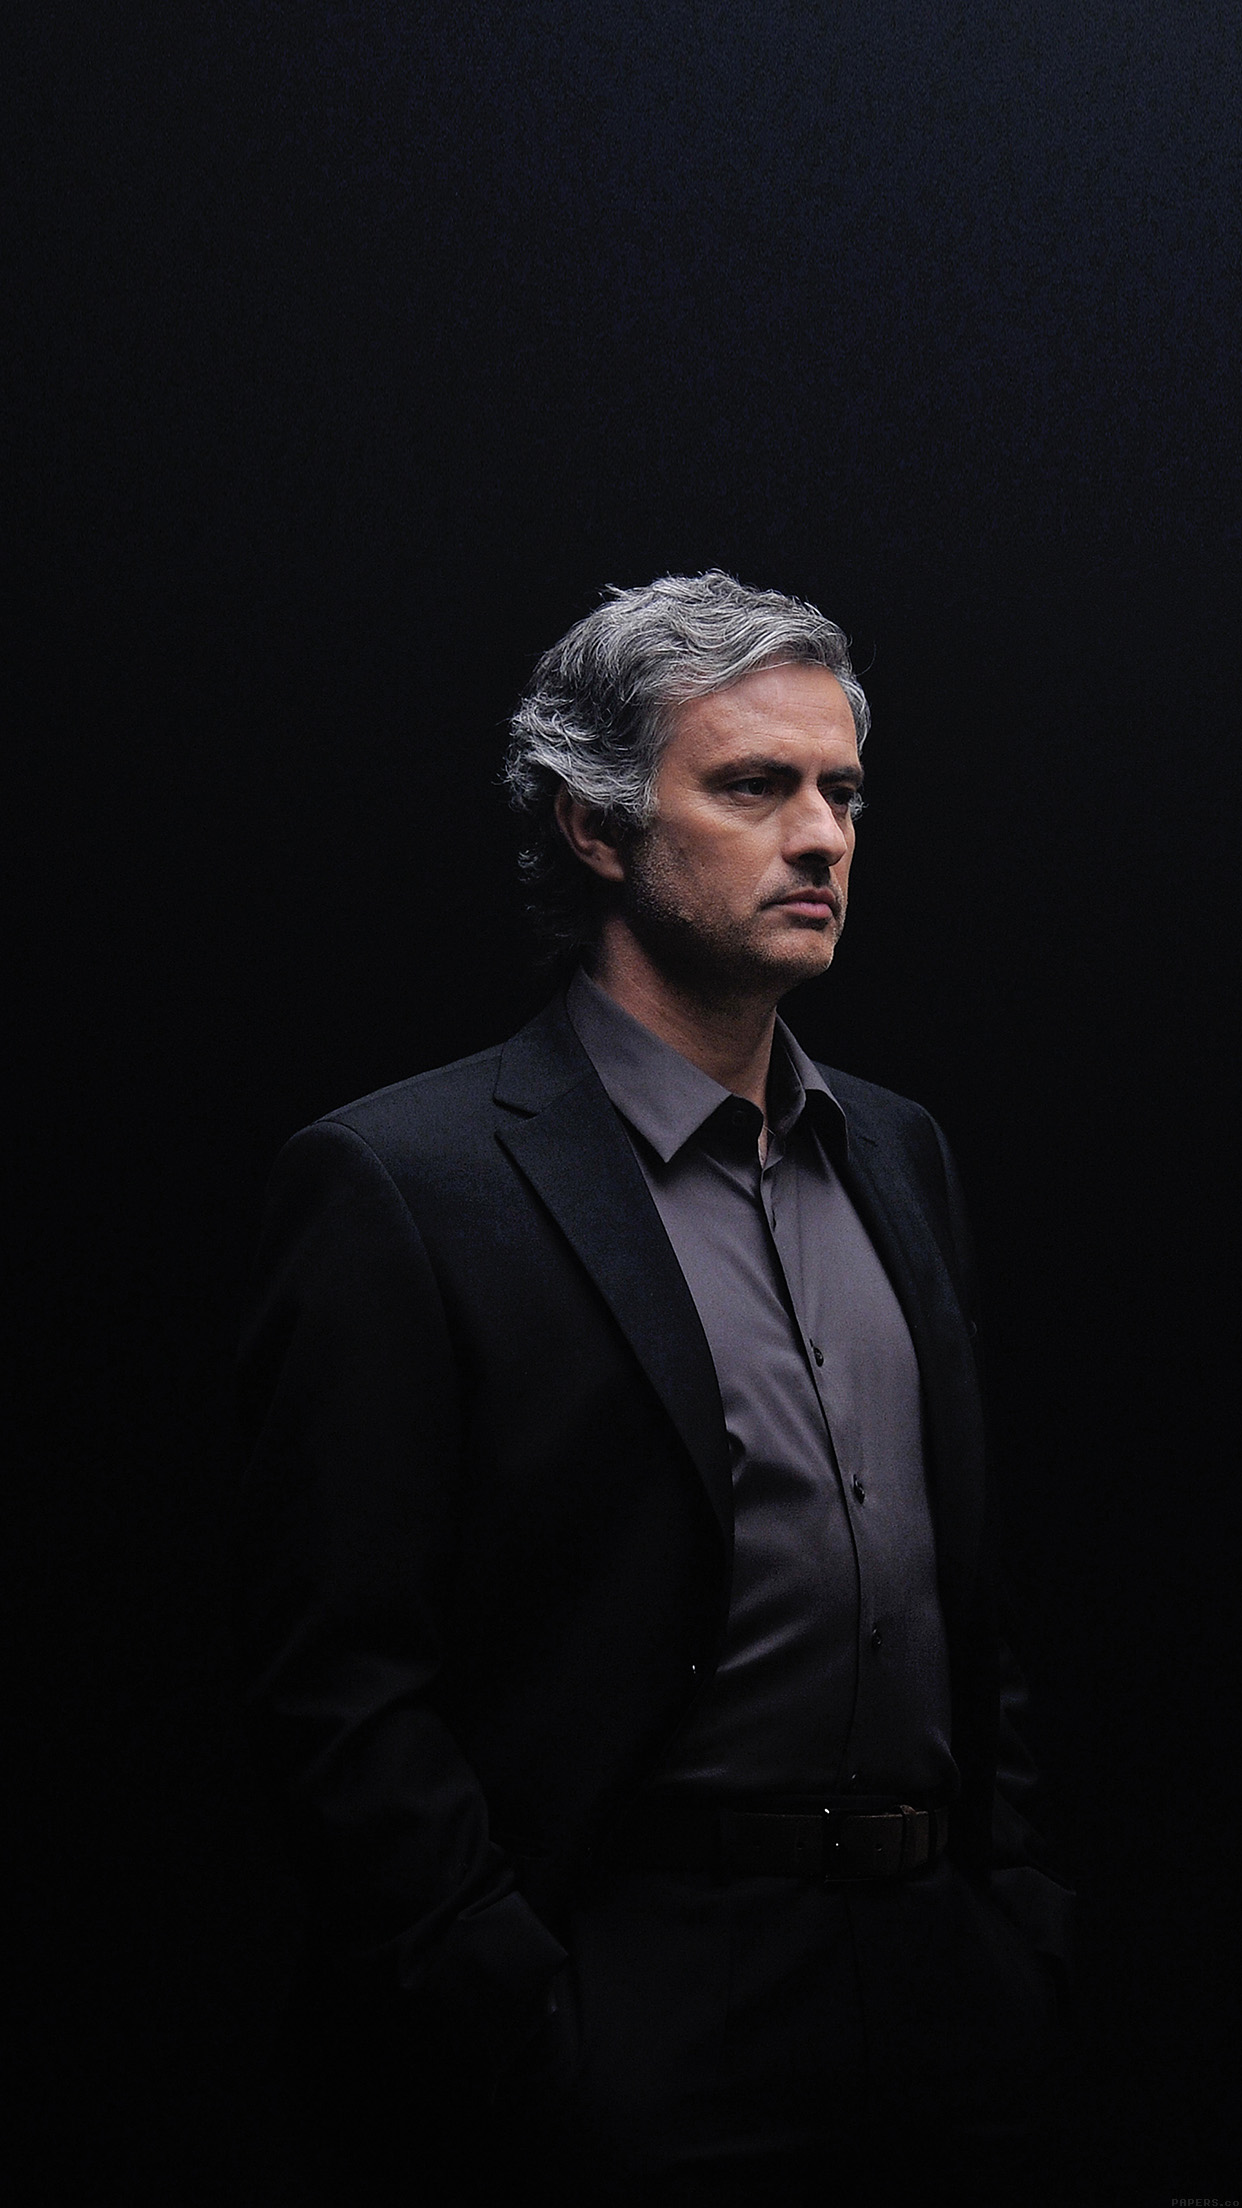 Manchester United Wallpaper Iphone X For Iphone X Iphonexpapers